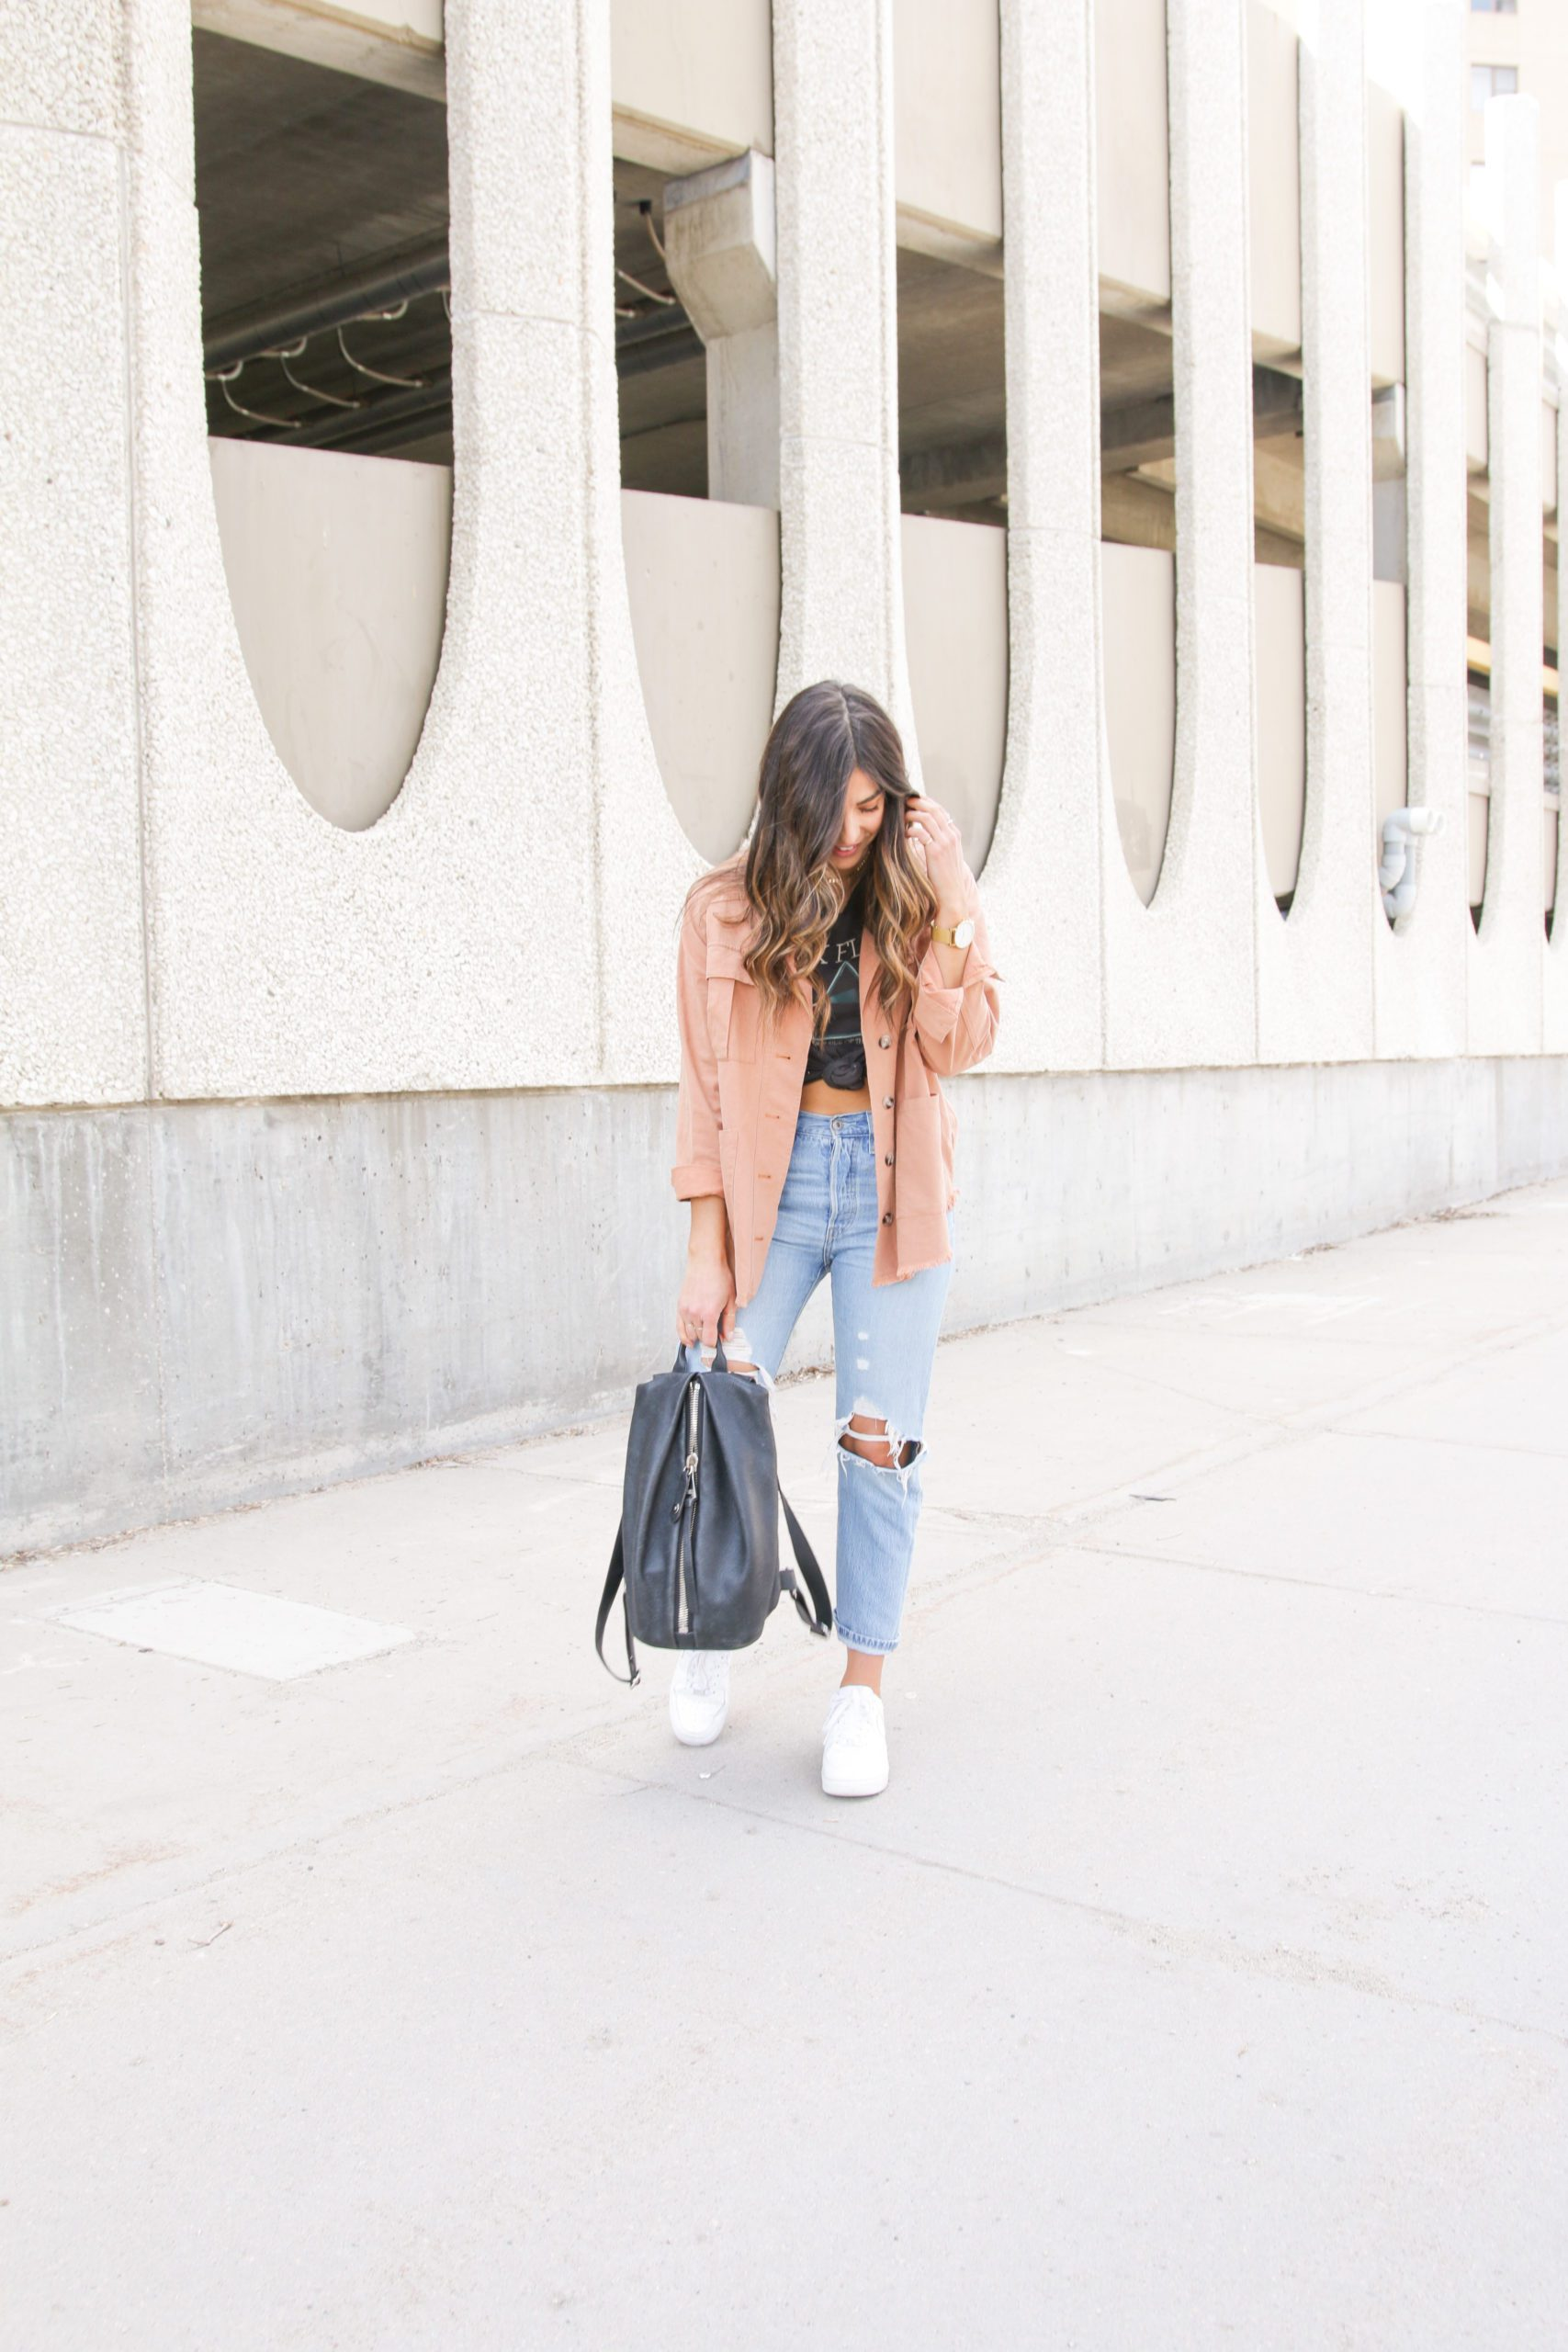 Spring Jacket and Jeans